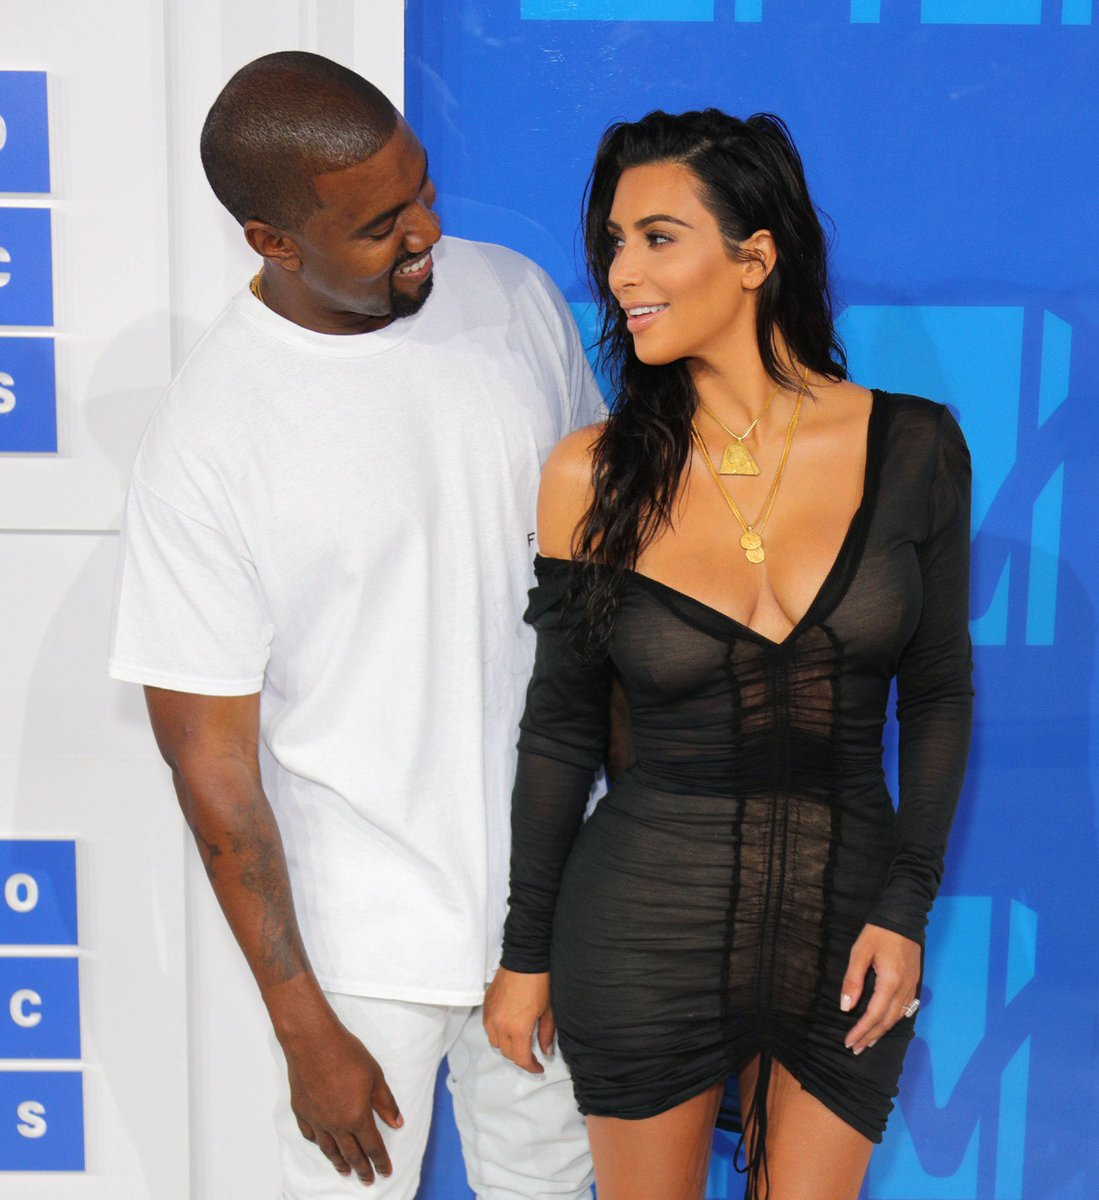 RT TO VOTE!  I'm voting for Kanye West for Favorite Artist - Contemporary Inspirational at the #AMAs https://t.co/csvM4wT1e0